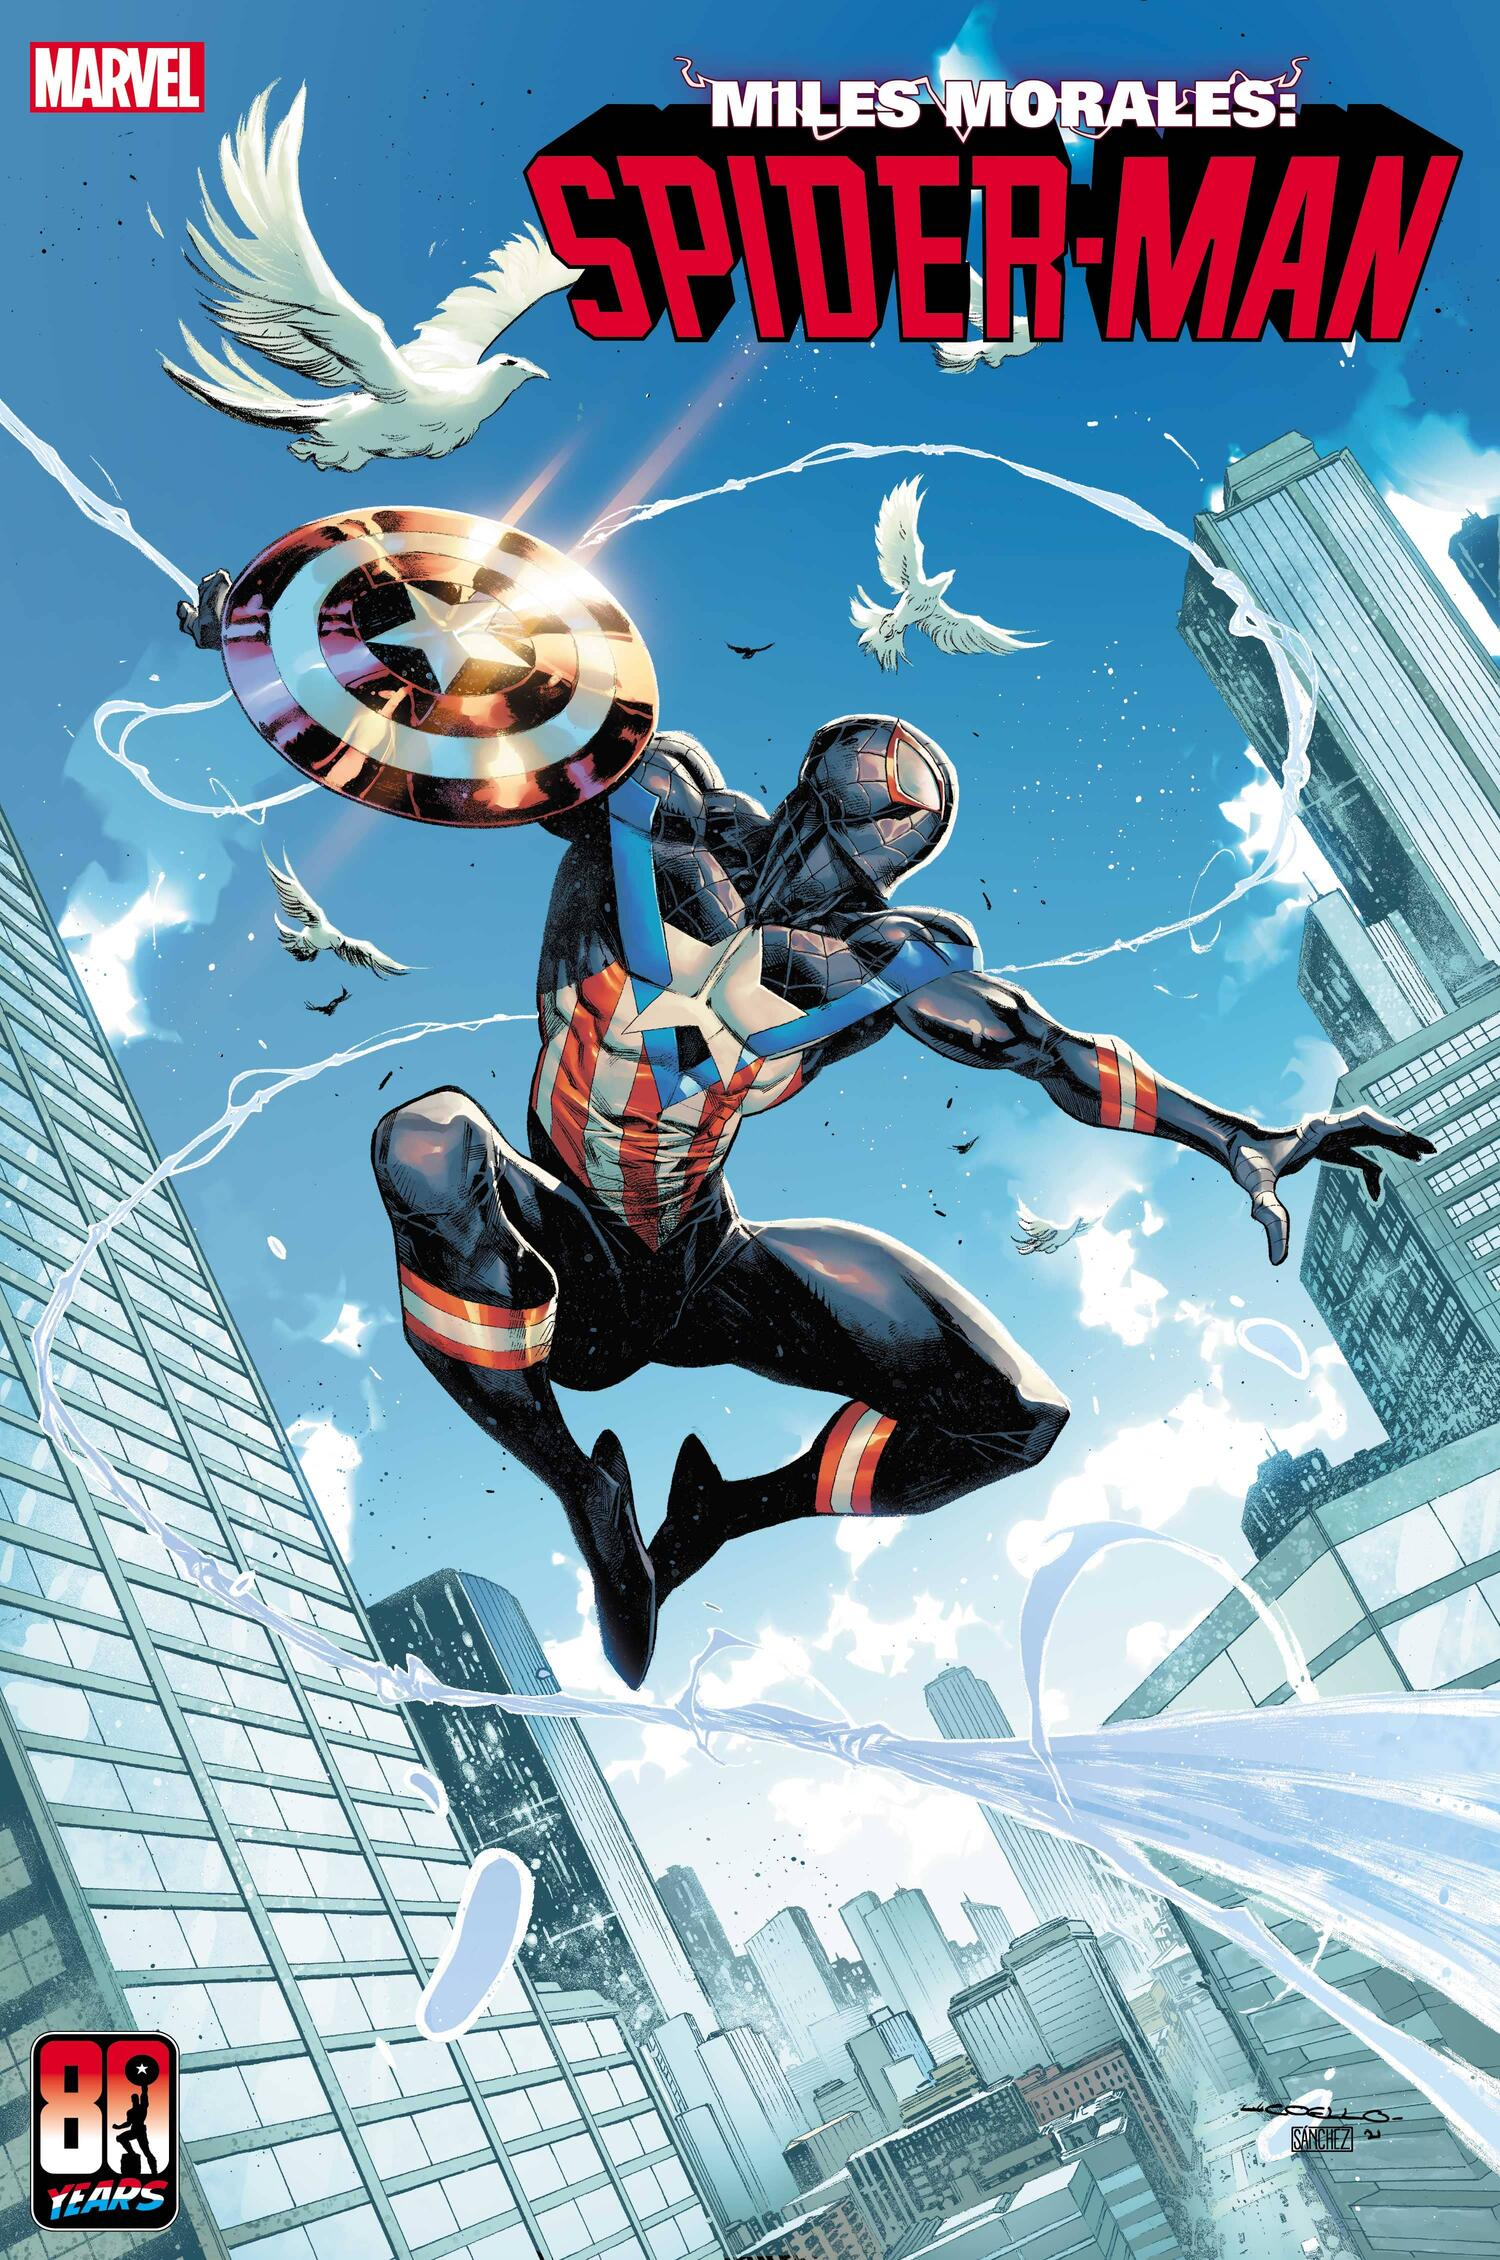 MILES MORALES: SPIDER-MAN #28 CAPTAIN AMERICA 80TH VARIANT COVER by IBAN COELLO & ALEJANDRO SÀNCHEZ